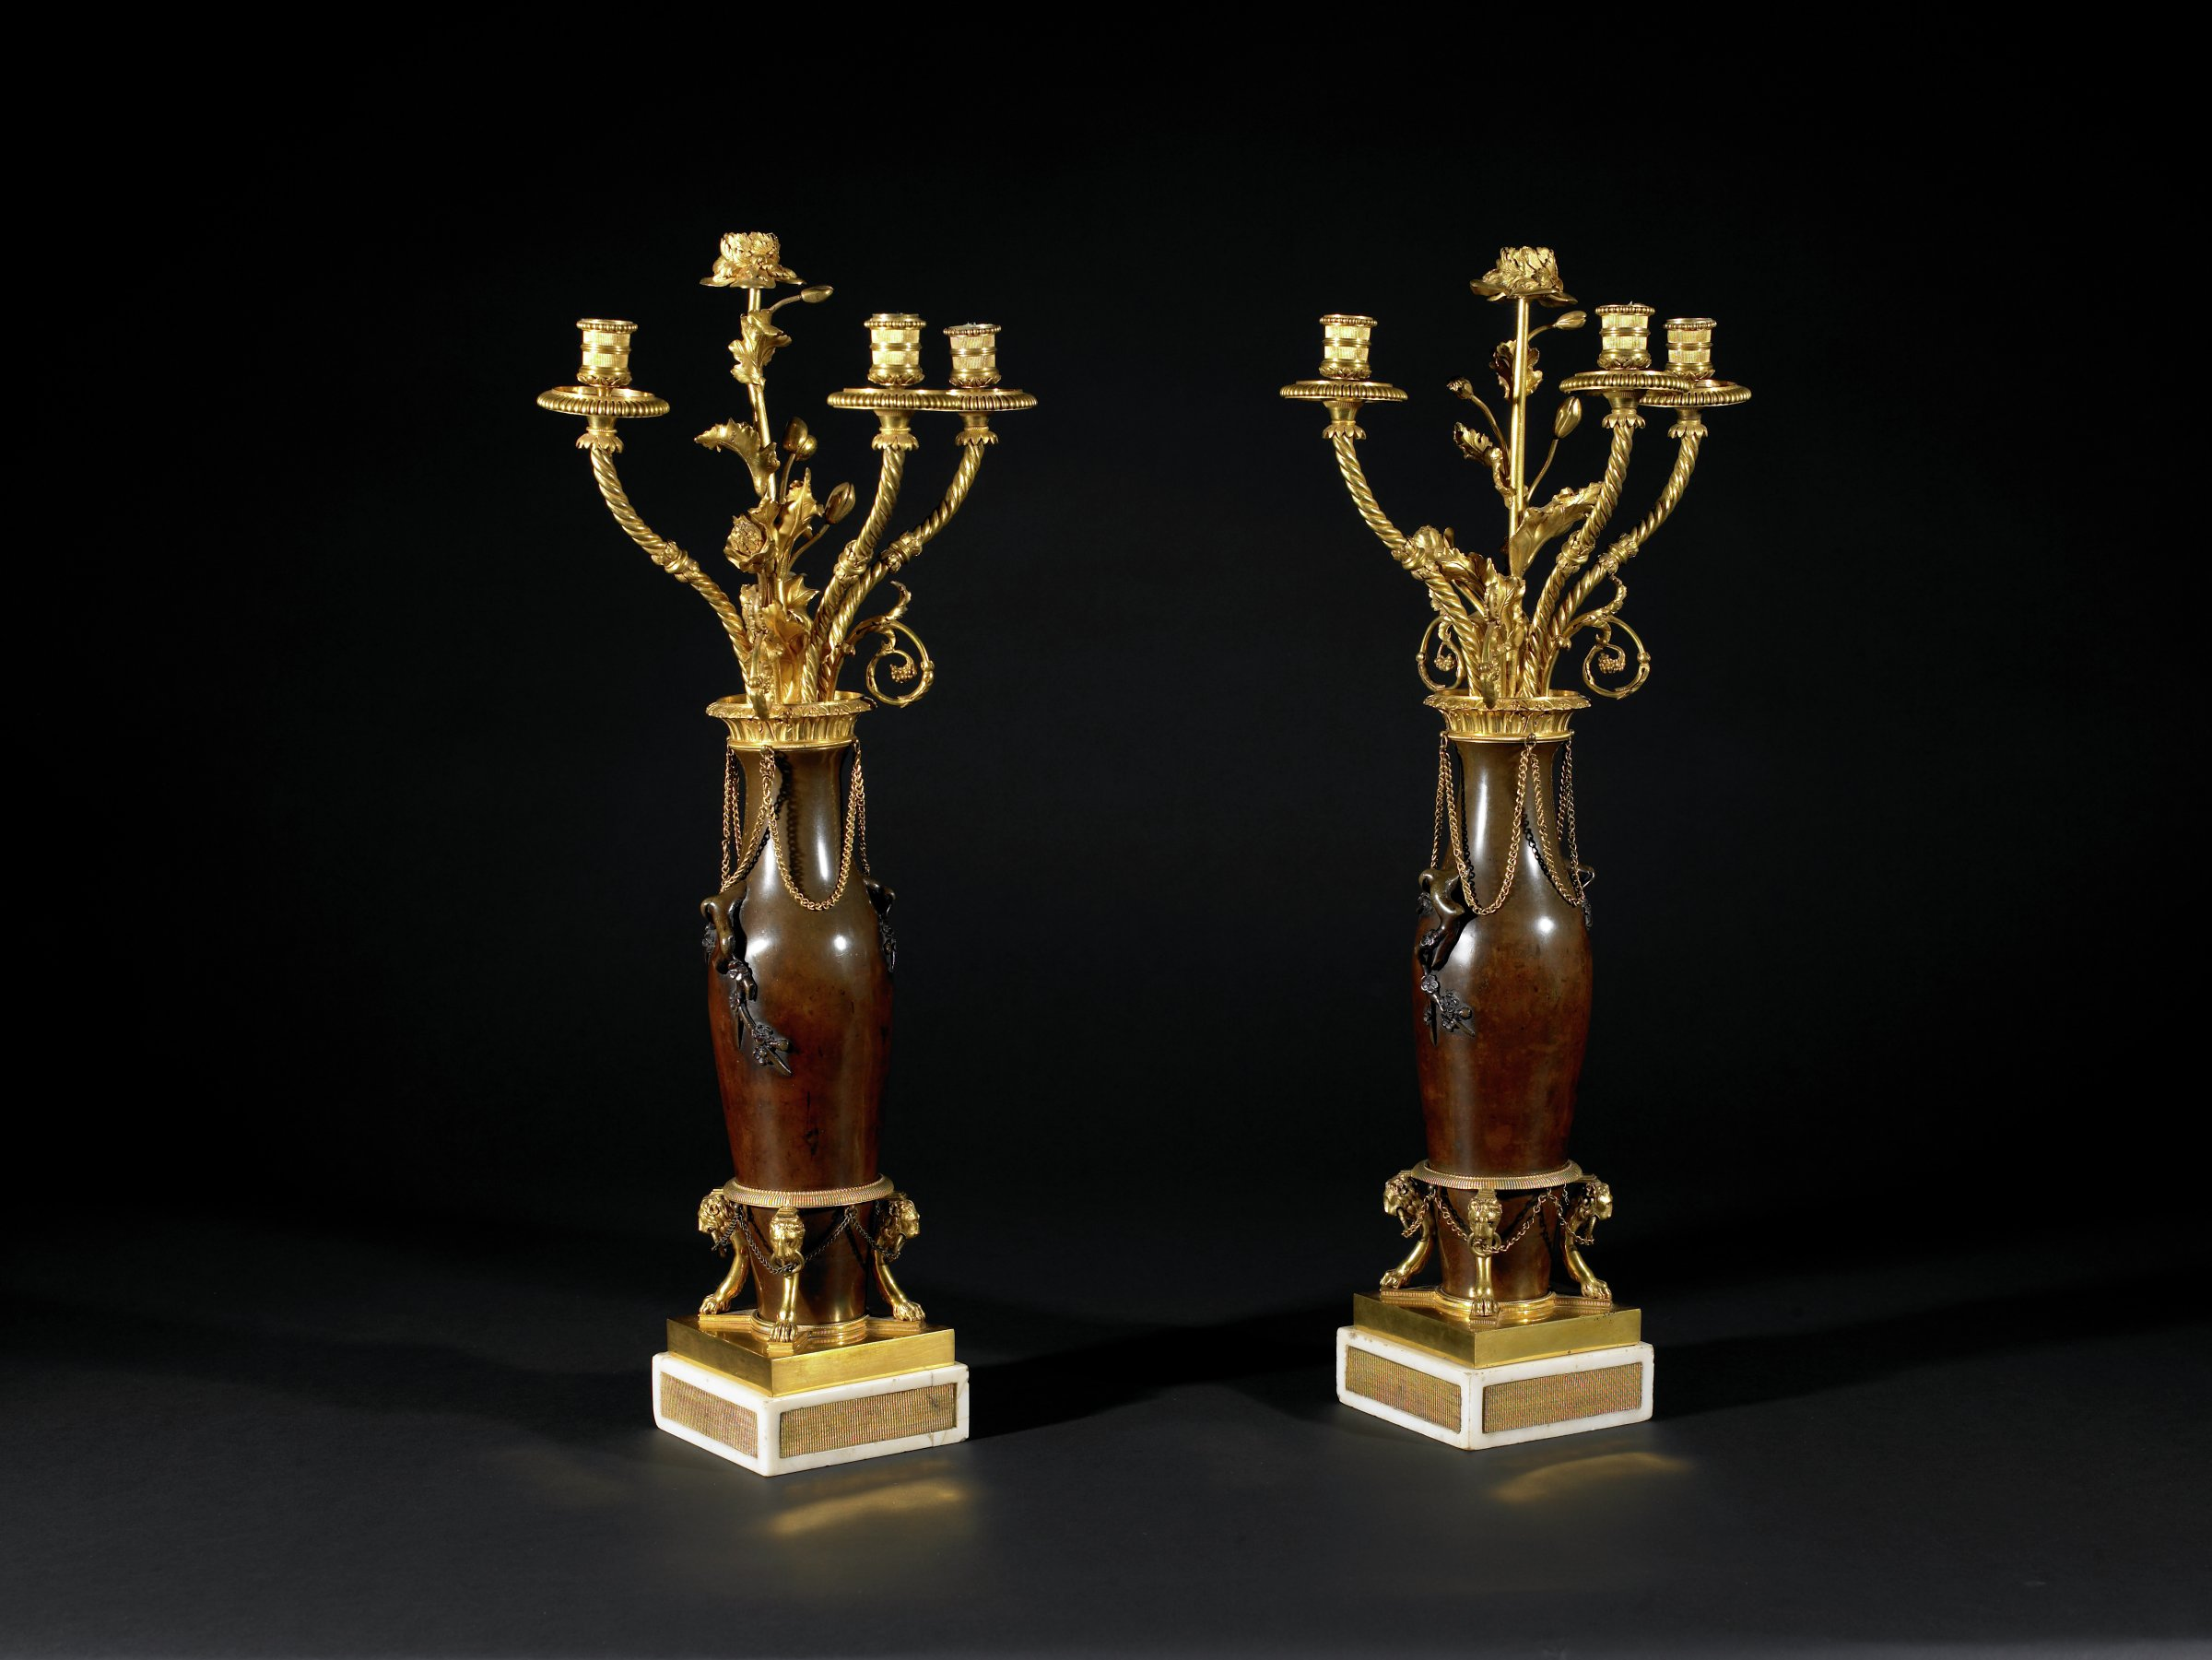 Pair of gilt-bronze and Japanese patinated bronze three-light candelabra, the ovoid patinated bronze vase surmounted by a foliate-molded gilt-bronze top issuing three twist-turned candlearms centered by a scrolling foliate-molded bouquet over draped chains, raised on a stand composed of three monopodial supports headed by lion's heads, and resting on a stepped bronze and white marble plinth.